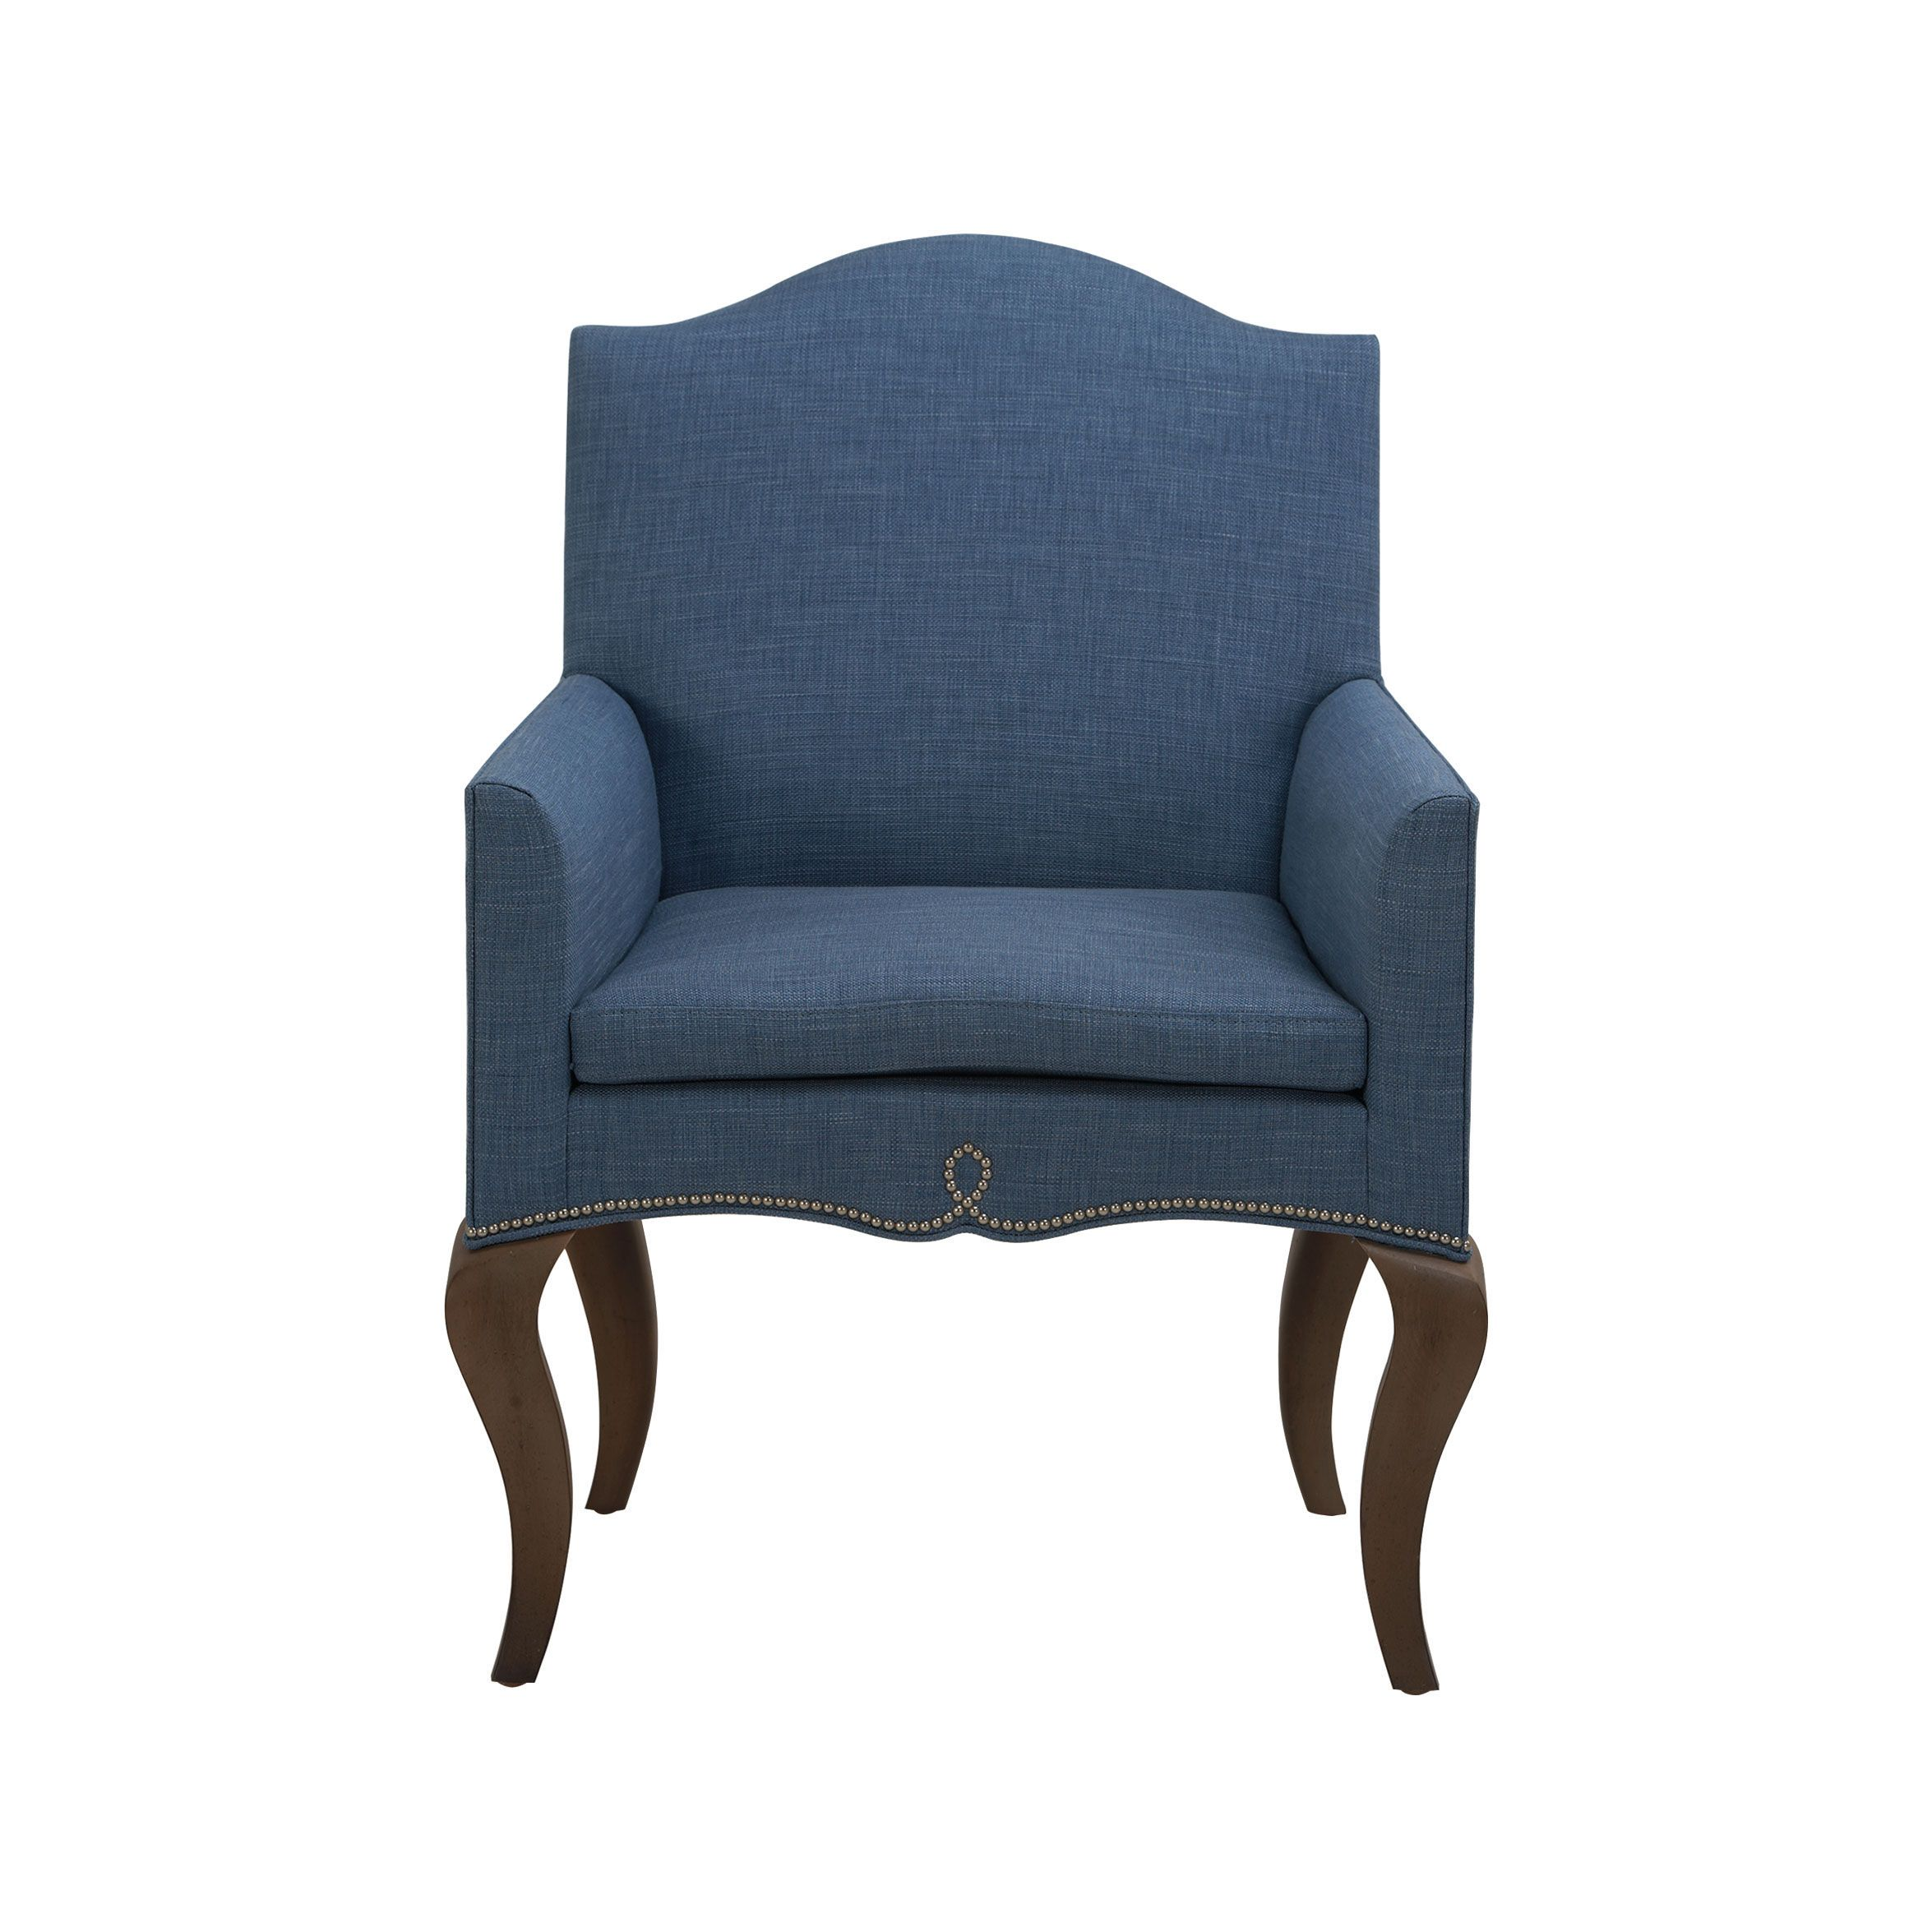 Find This Pin And More On Lake House Living Room By Designgirlnyc. Ethan  Allen Barden Chair ...